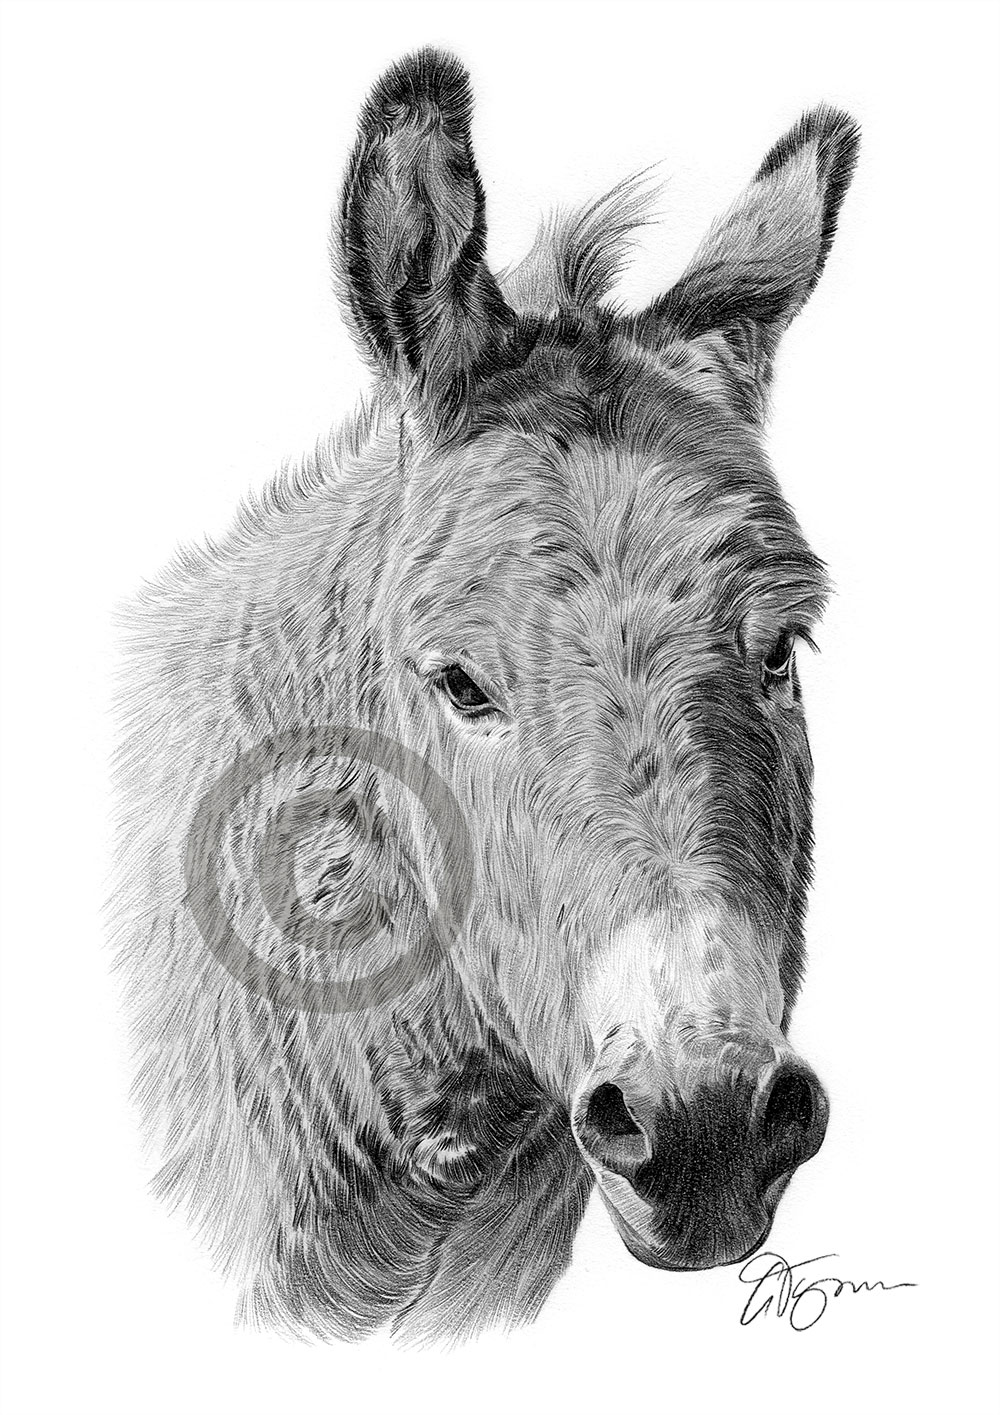 Donkey pencil drawing by artist Gary Tymon